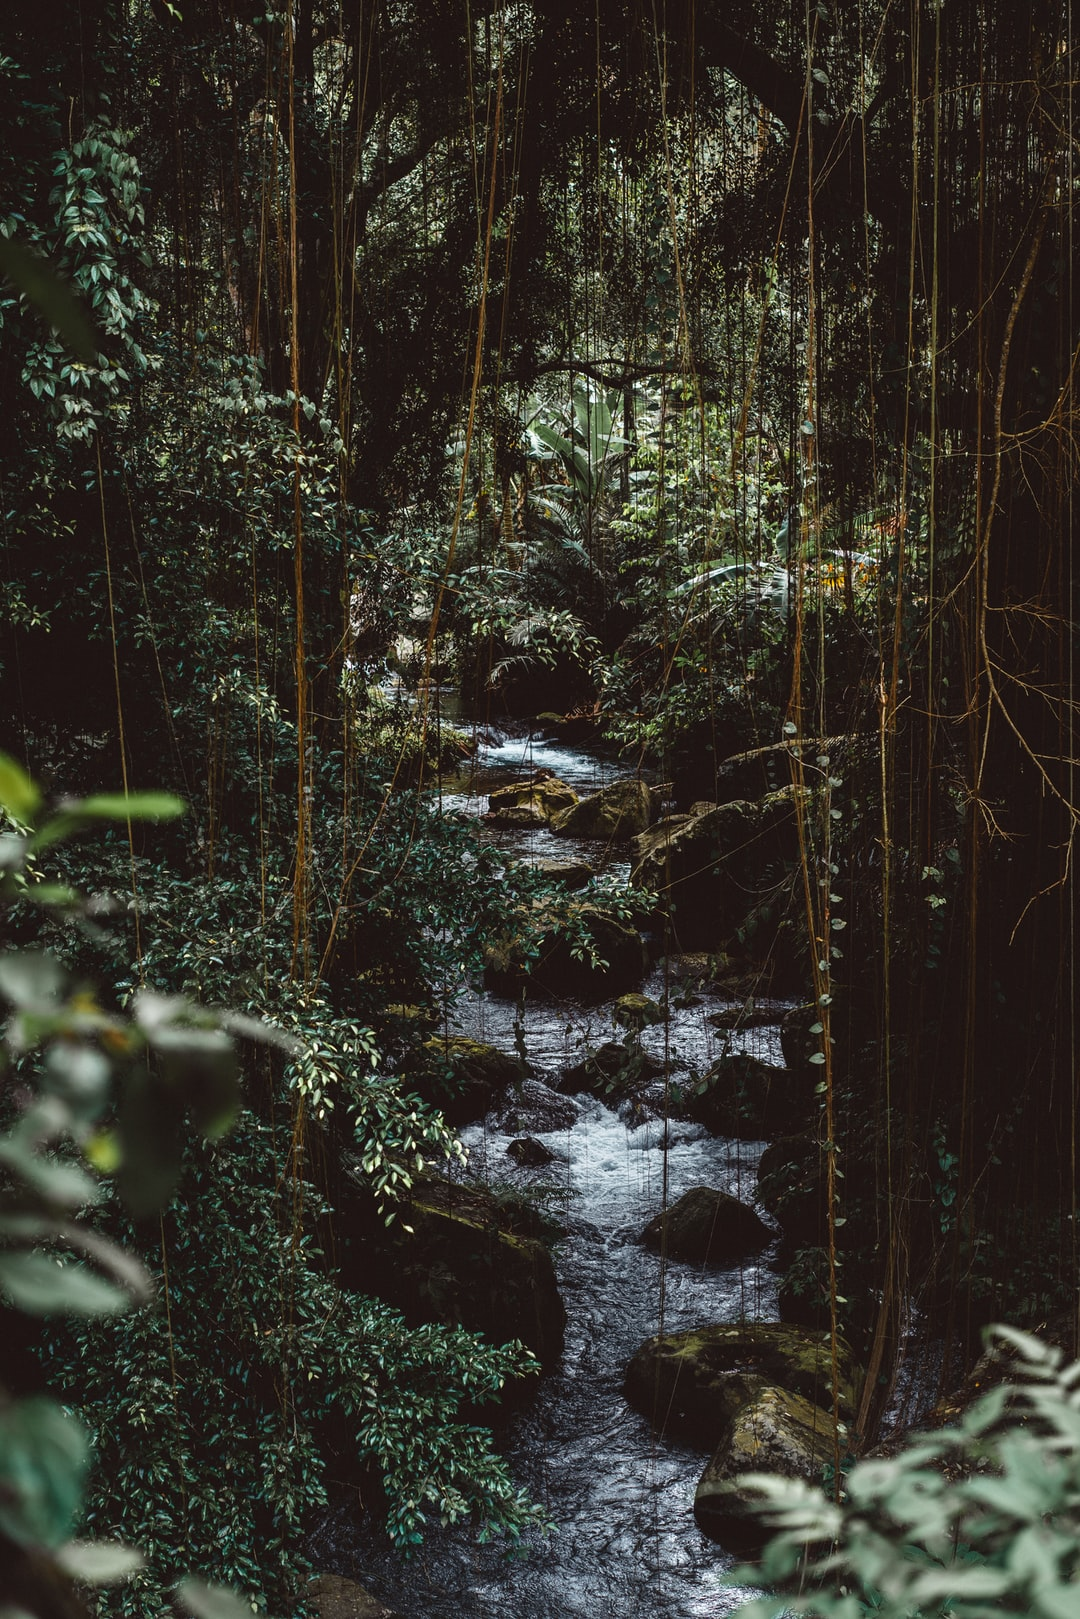 Stream in a green thicket